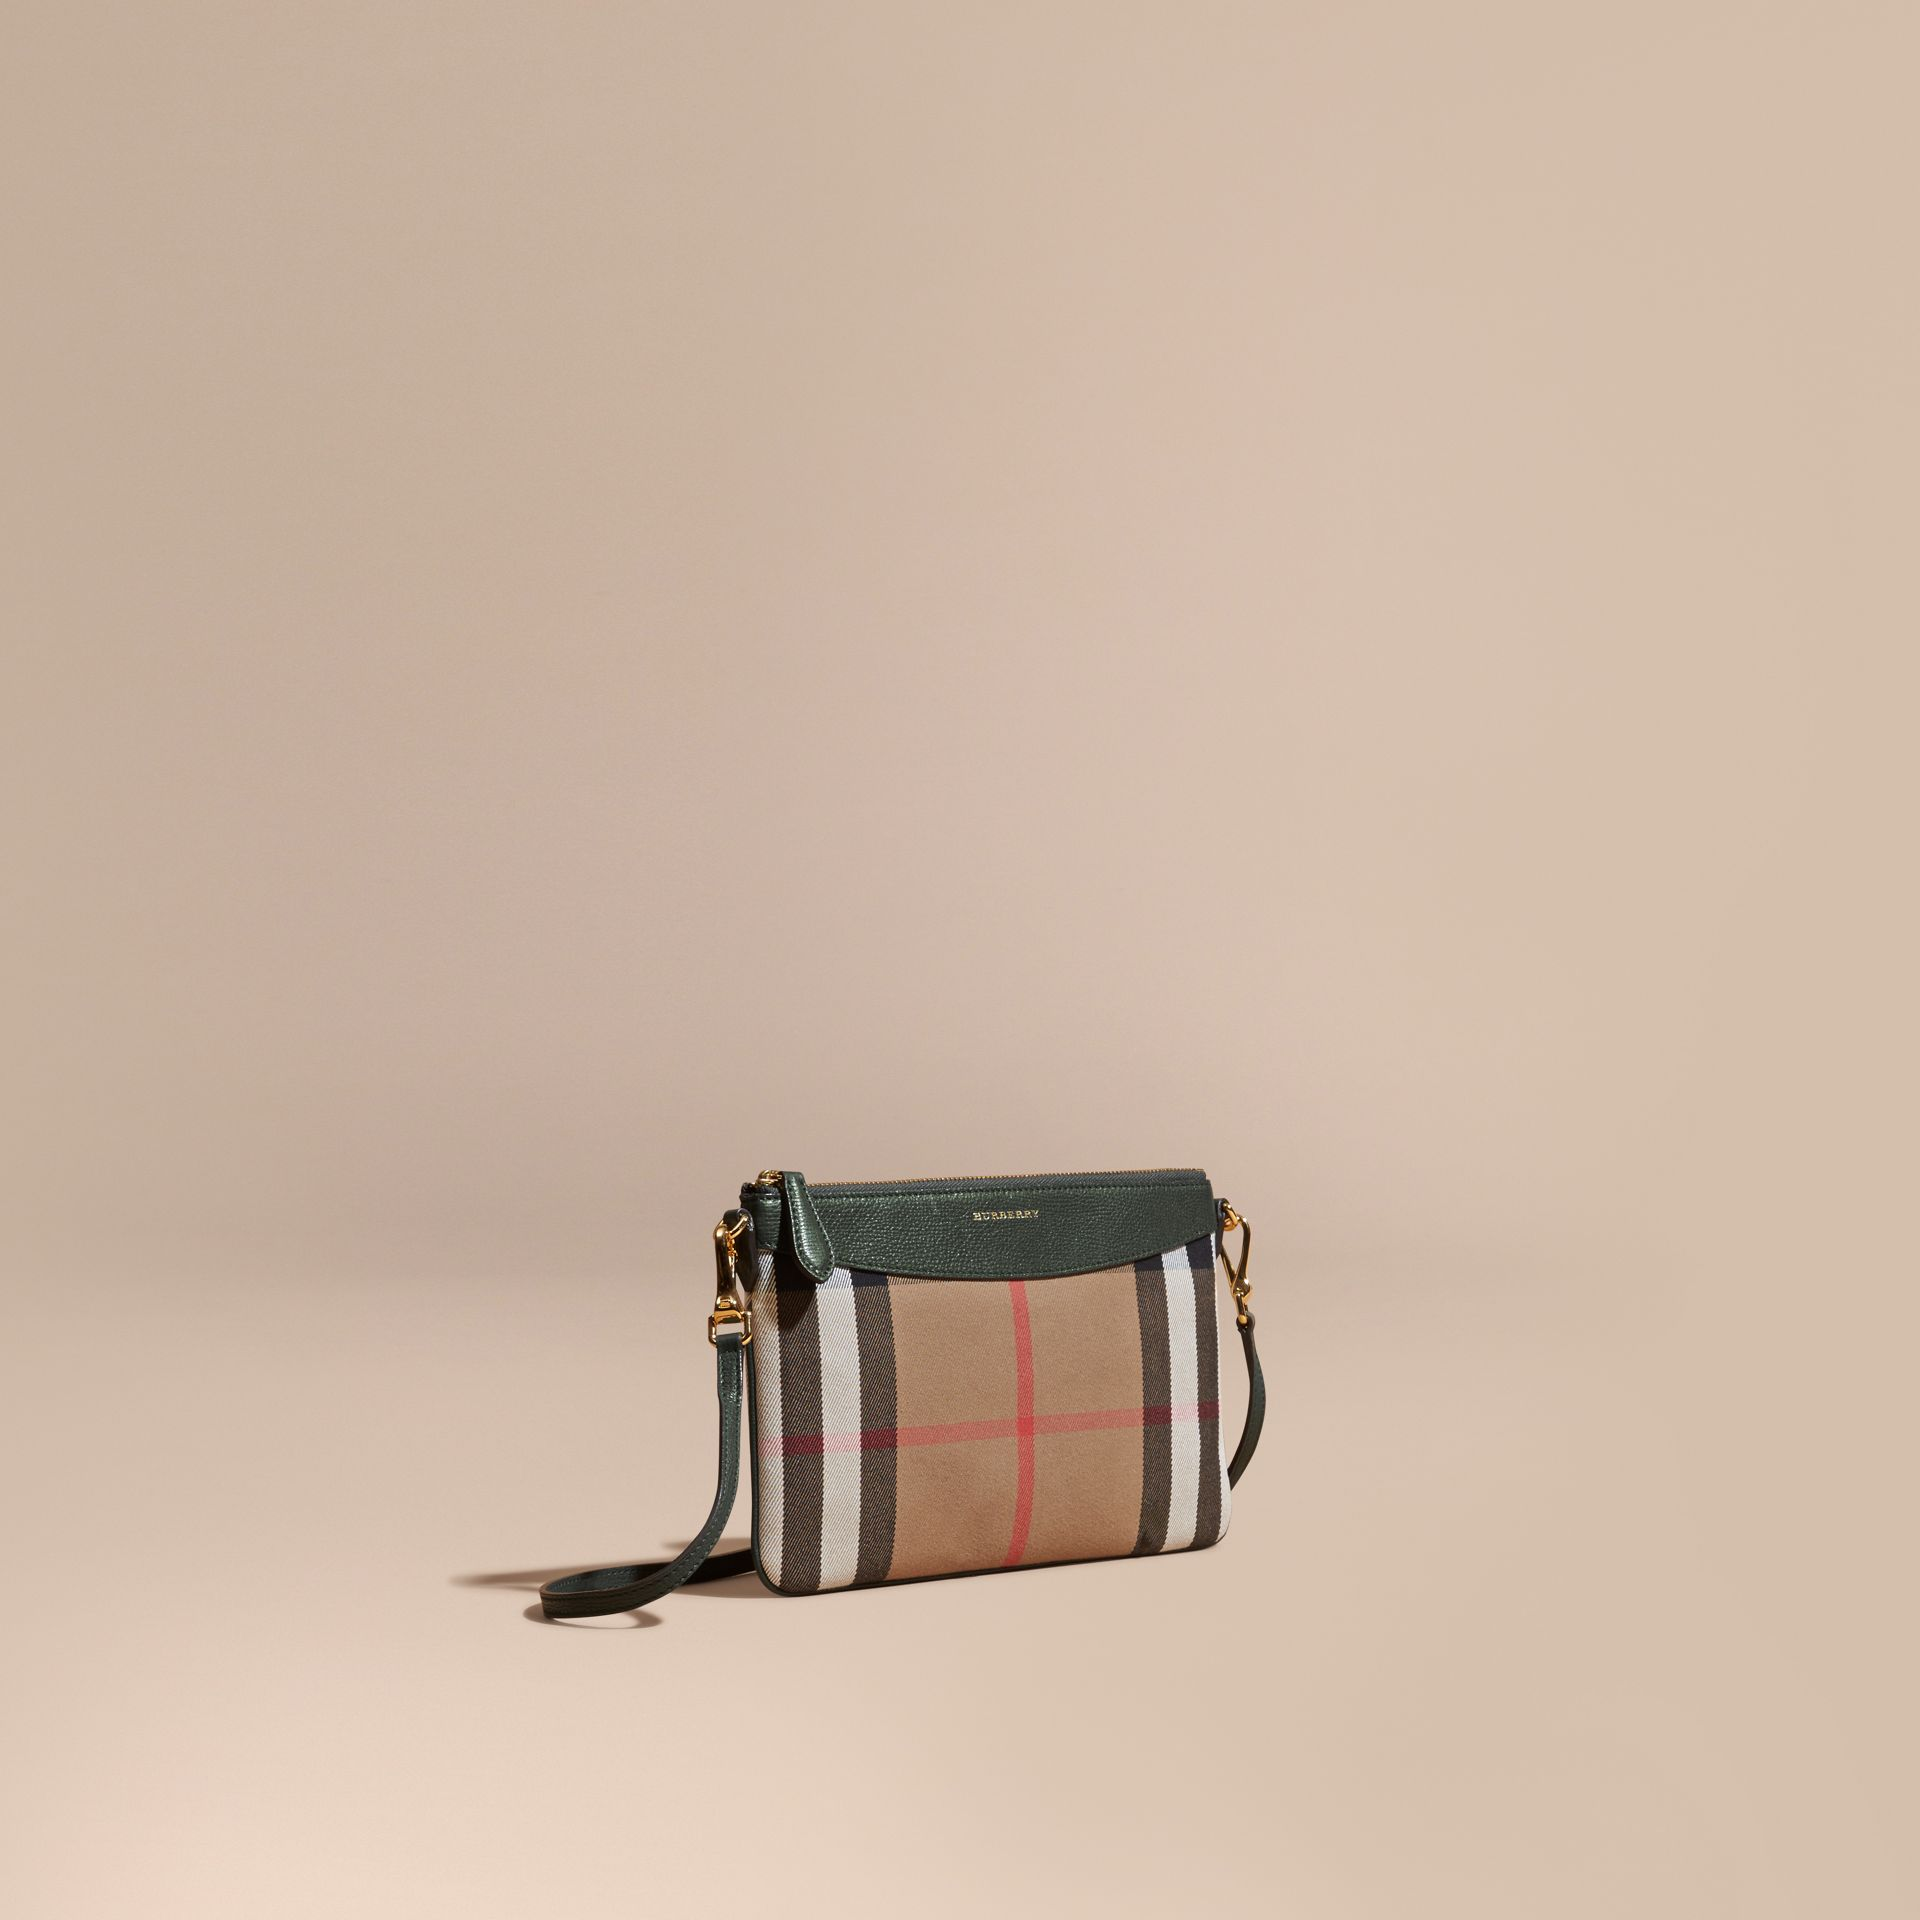 House Check and Leather Clutch Bag Dark Bottle Green - gallery image 1